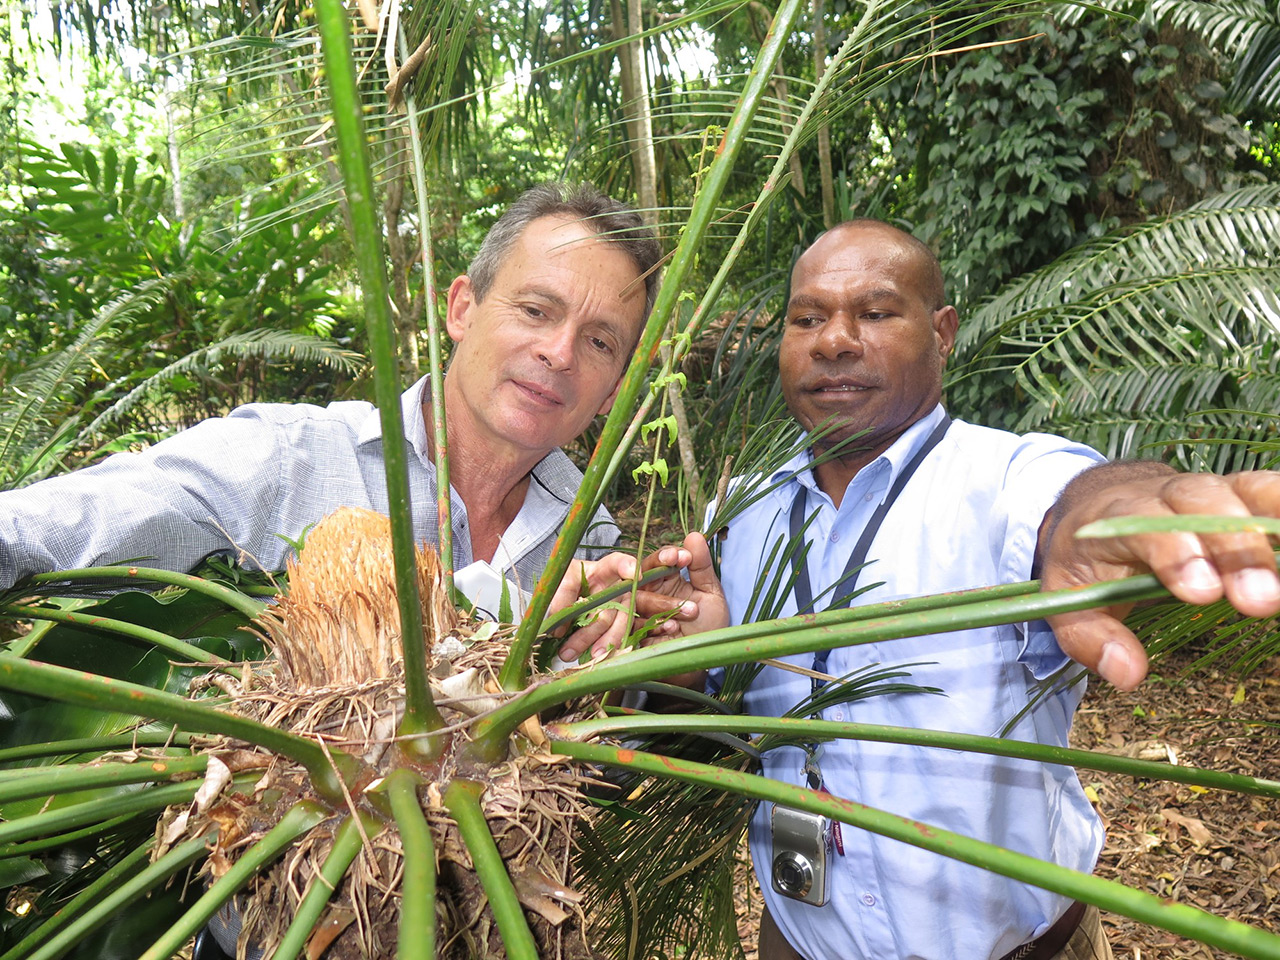 Lae-Botanic-Gardens-Curator-Michael-Lovave-explores-the-Cairns-Botanic-Gardens-with-his-Cairns-counterpart-David-Warmington._1